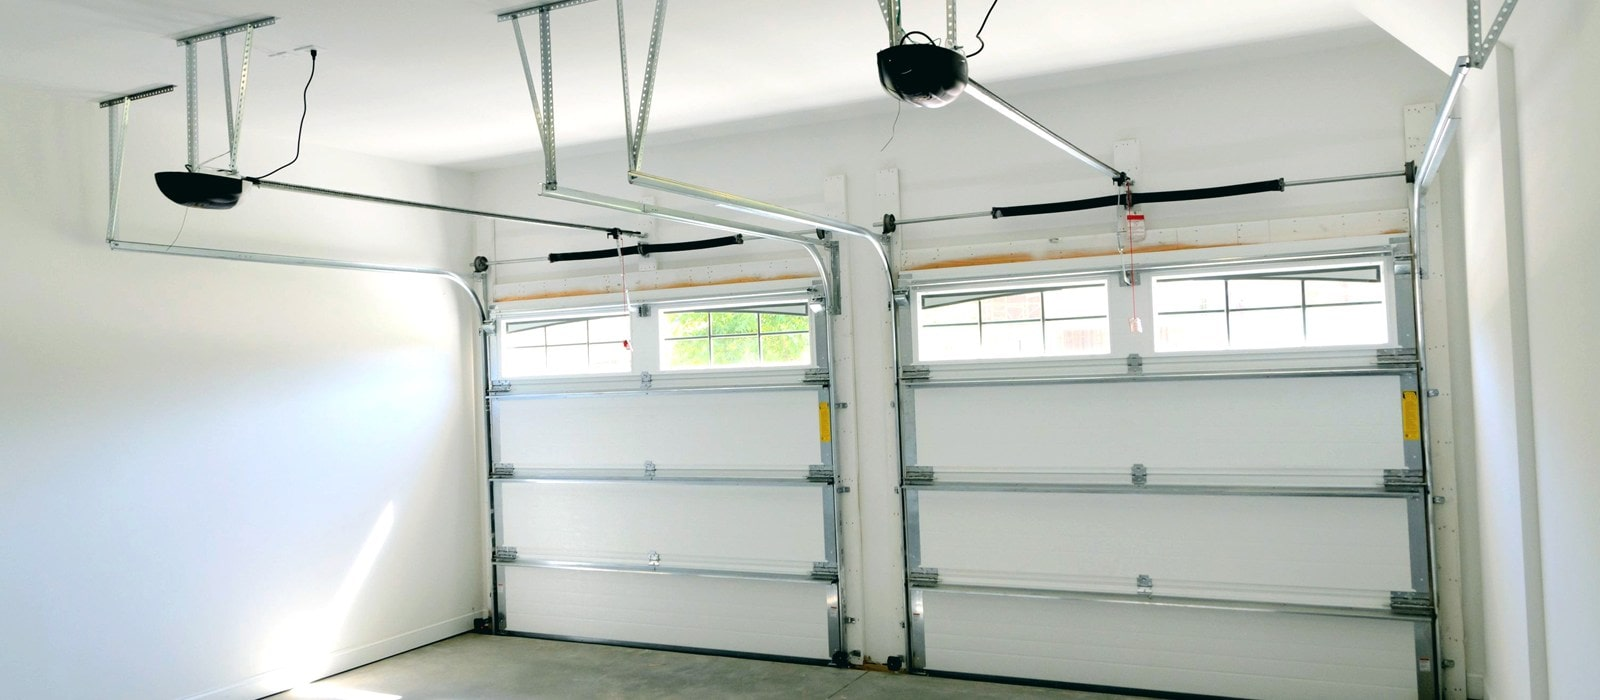 24h garage door repair service in la certified technician